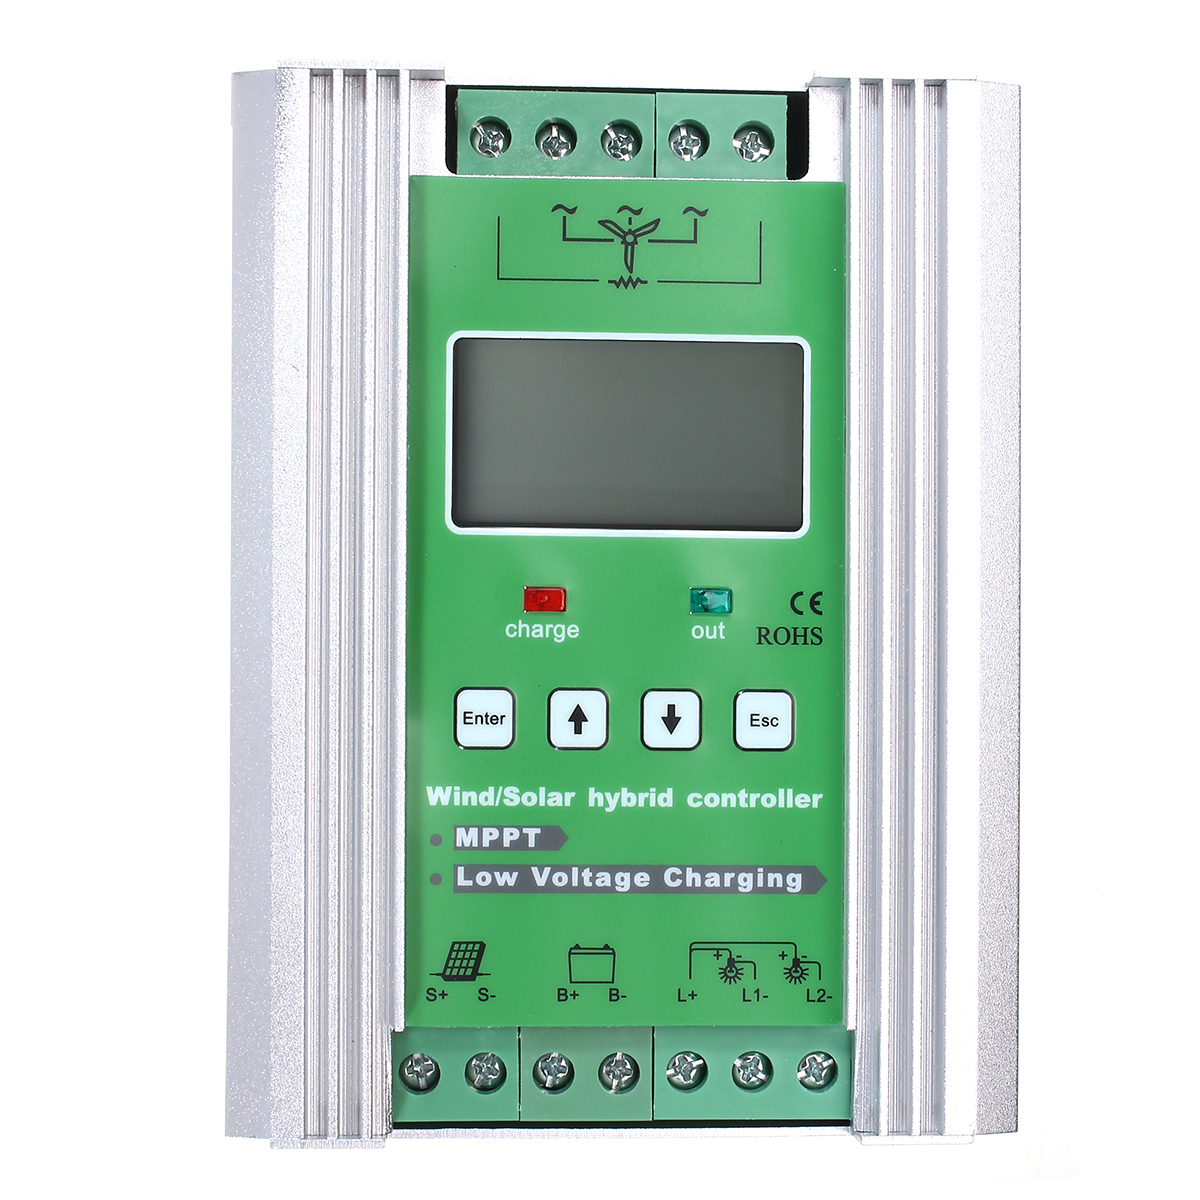 12V/24V Boost 300W Wind 150W Solar MPPT Wind Solar Hybrid Controller Regulator LCD Display